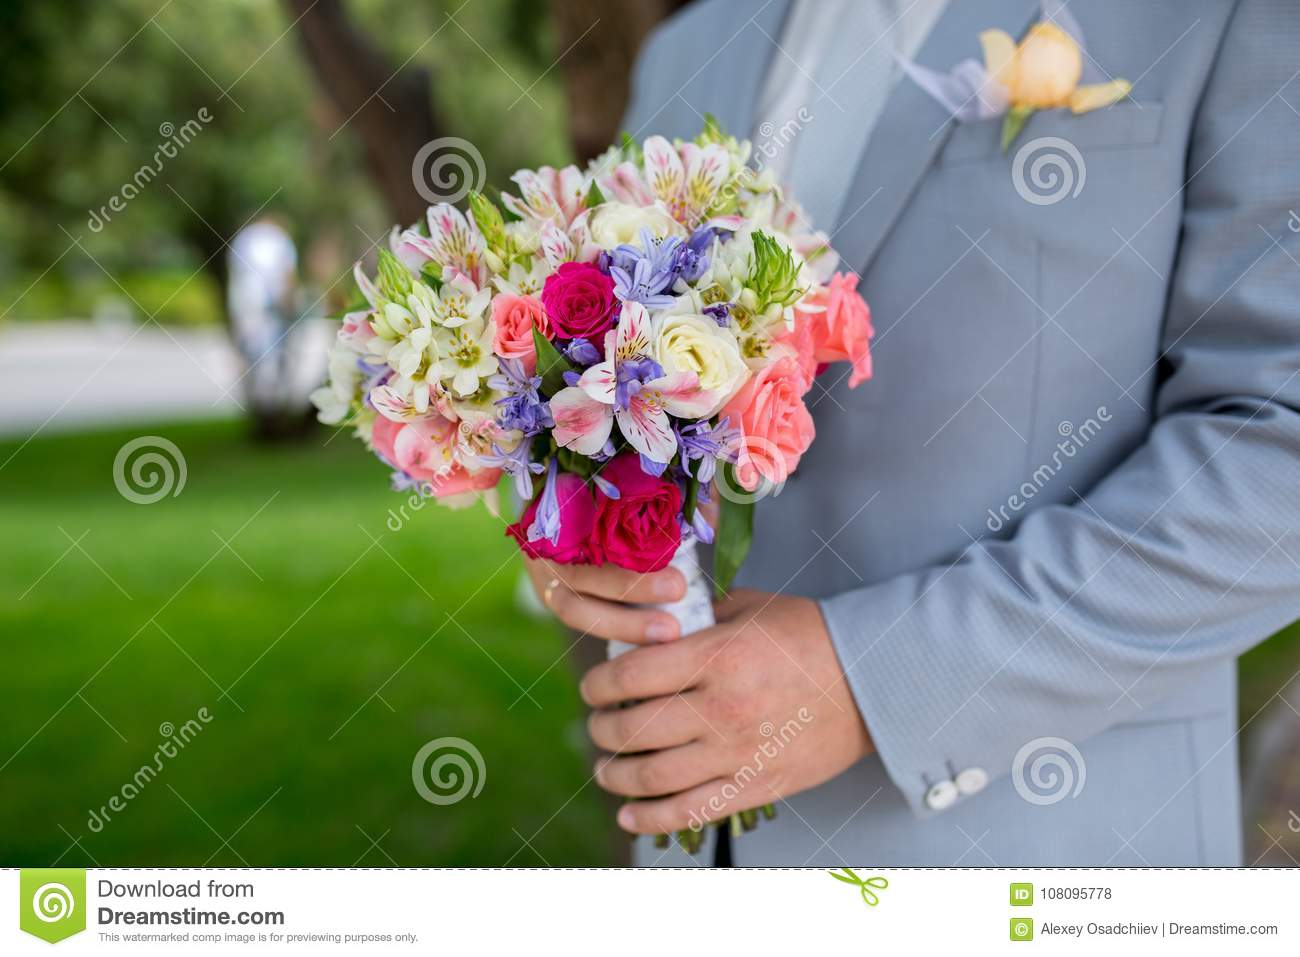 Man With Flower Bouquet Stock Photo Image Of Large 108095778